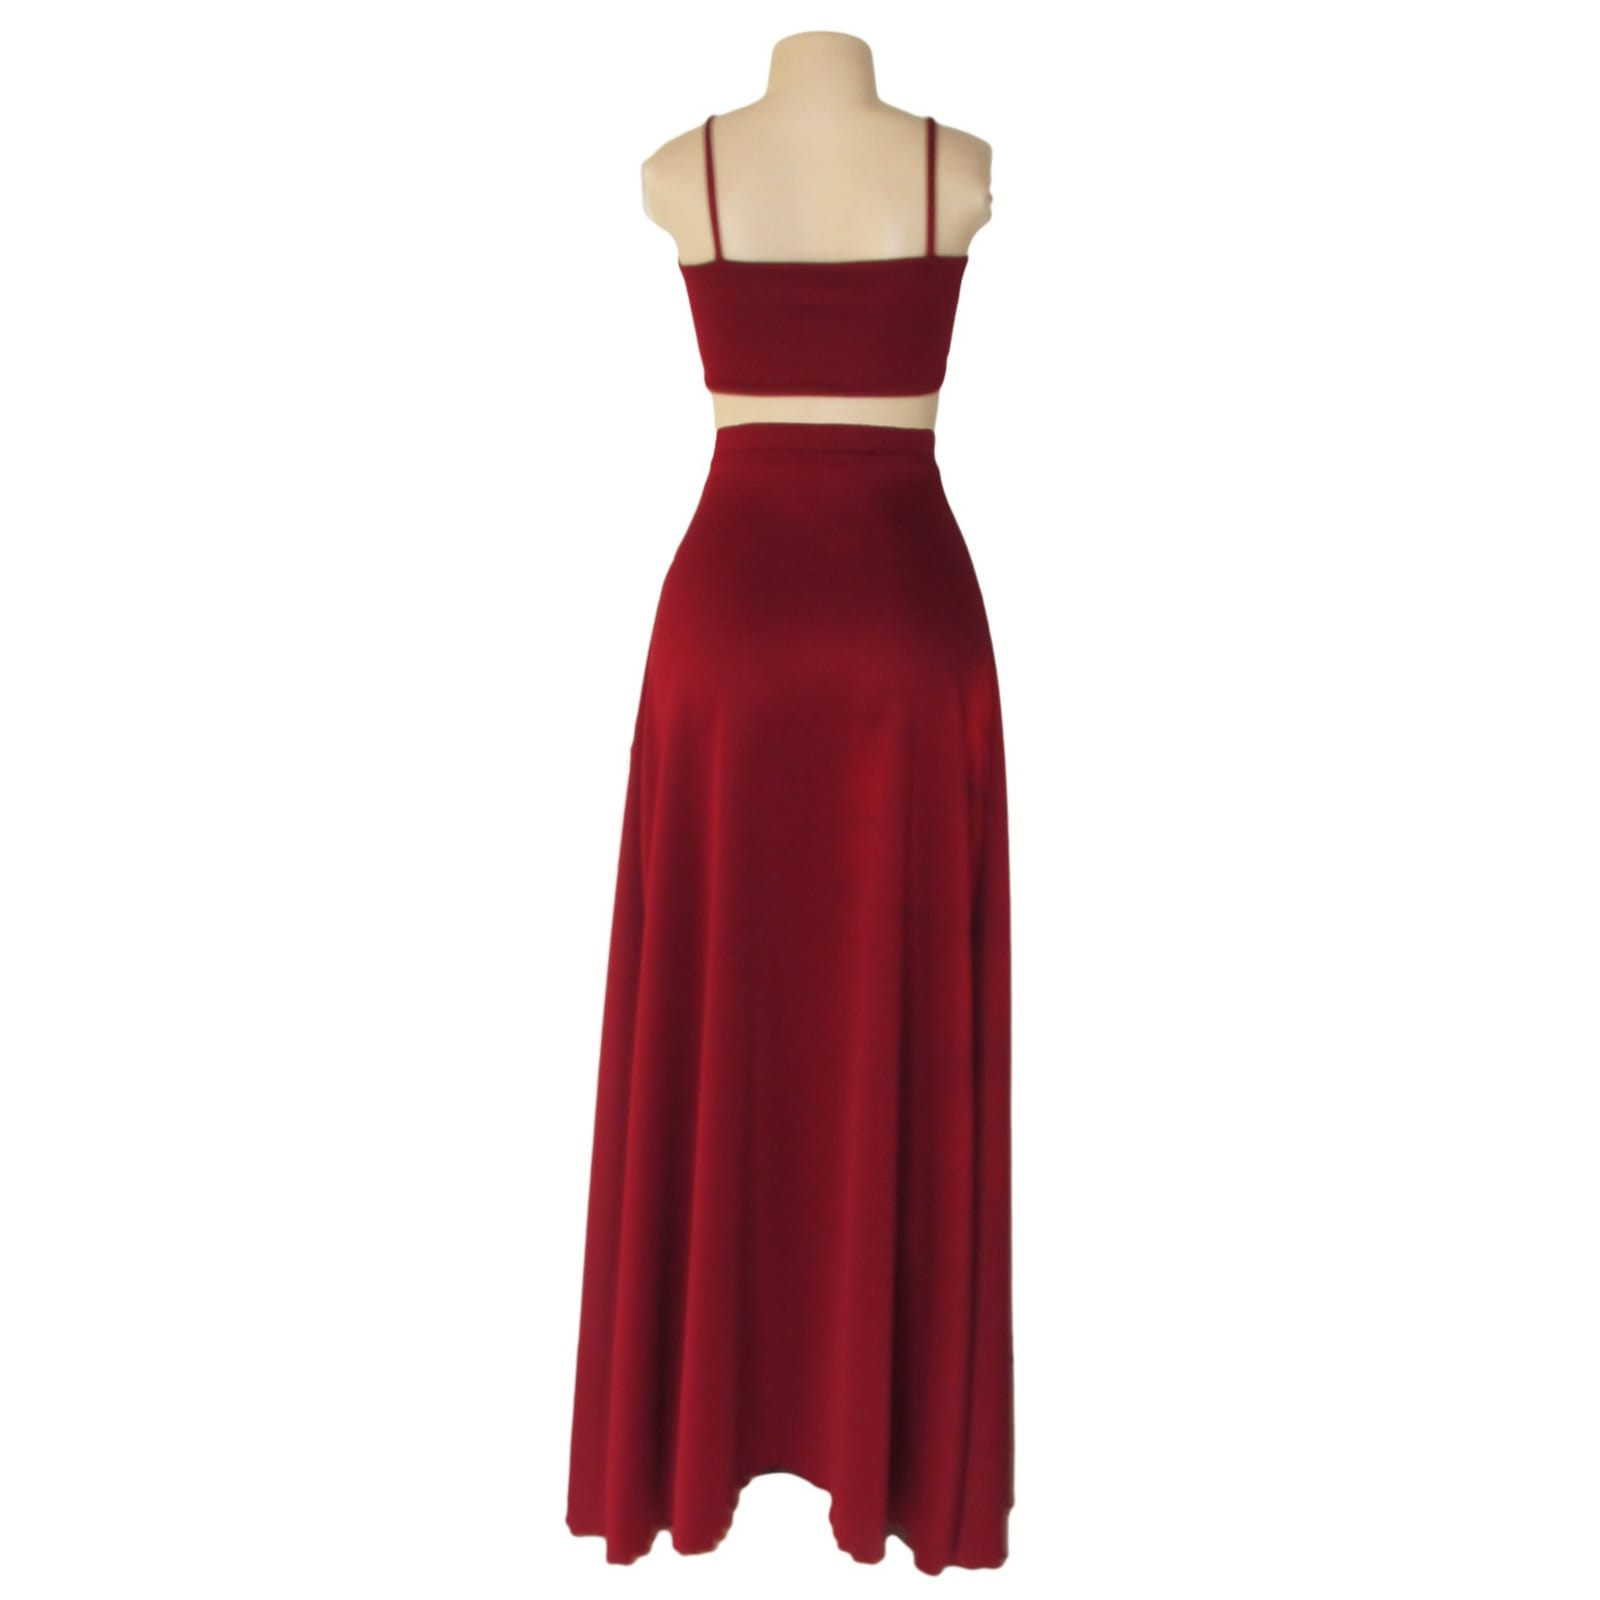 Maroon 2 piece smart casual wear 4 maroon 2 piece smart casual wear with a crop top and a long skirt with a crossed slit.